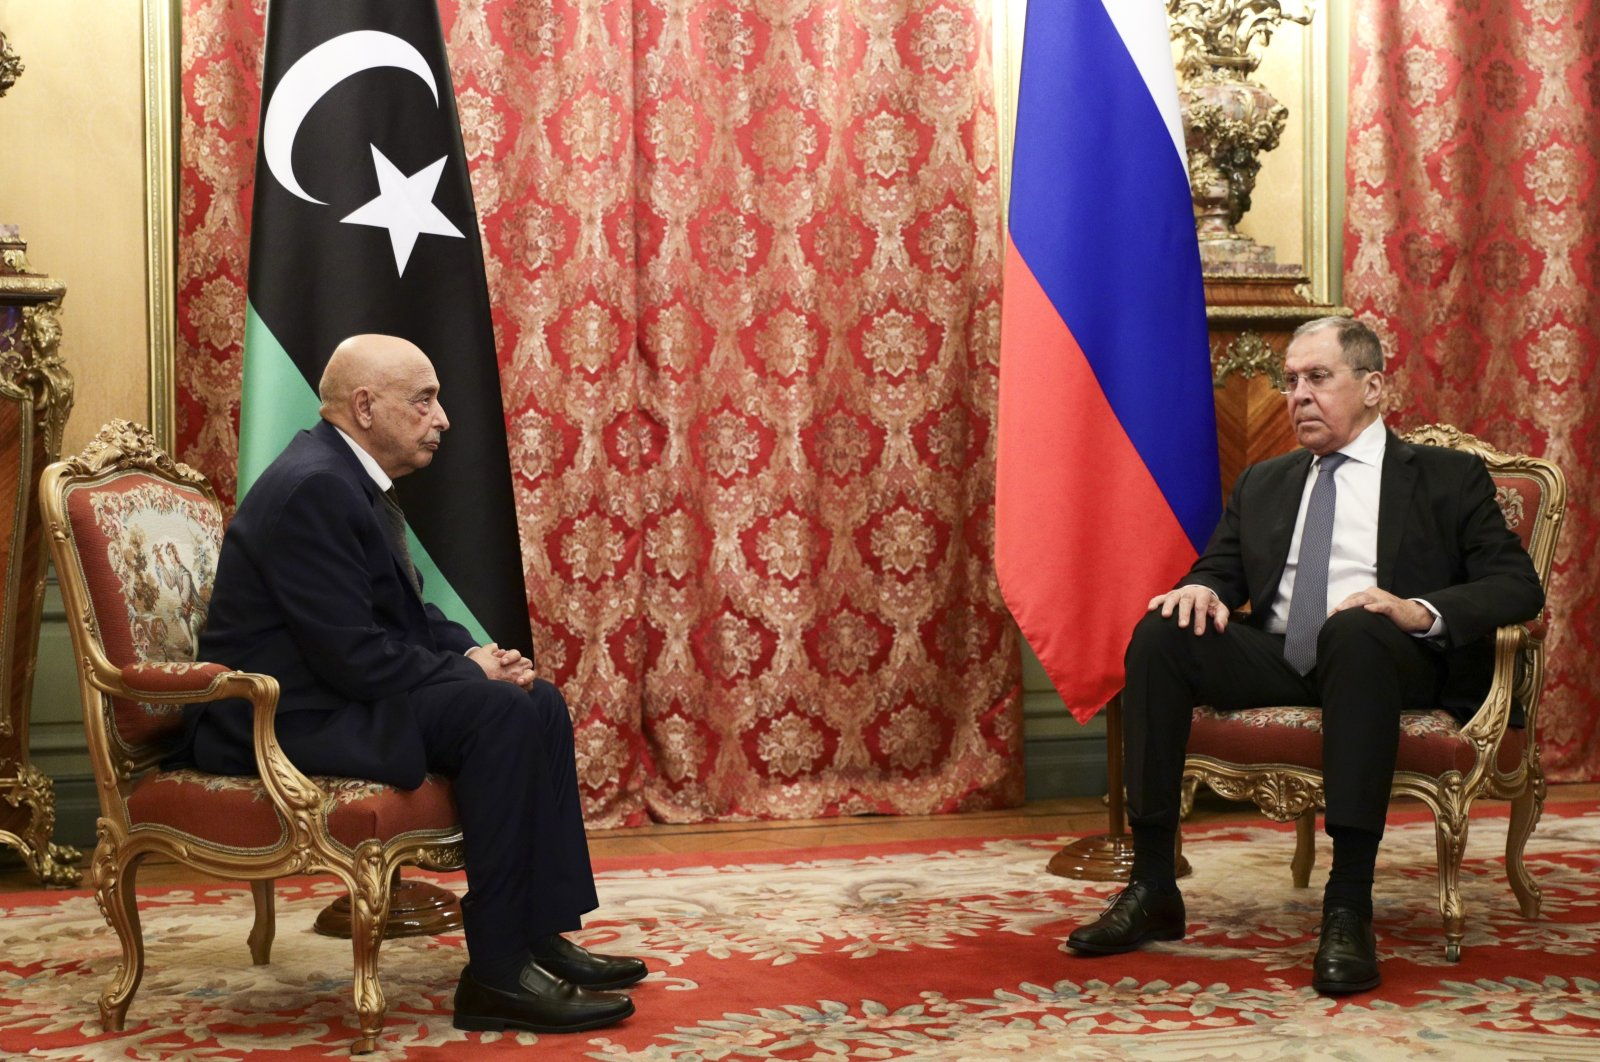 Russian Foreign Minister Sergey Lavrov (R) sits with Libya's eastern-based parliament speaker Aguila Saleh during their talks in Moscow, Russia, Nov. 24, 2020. (Russian Foreign Ministry Press Service via AP)